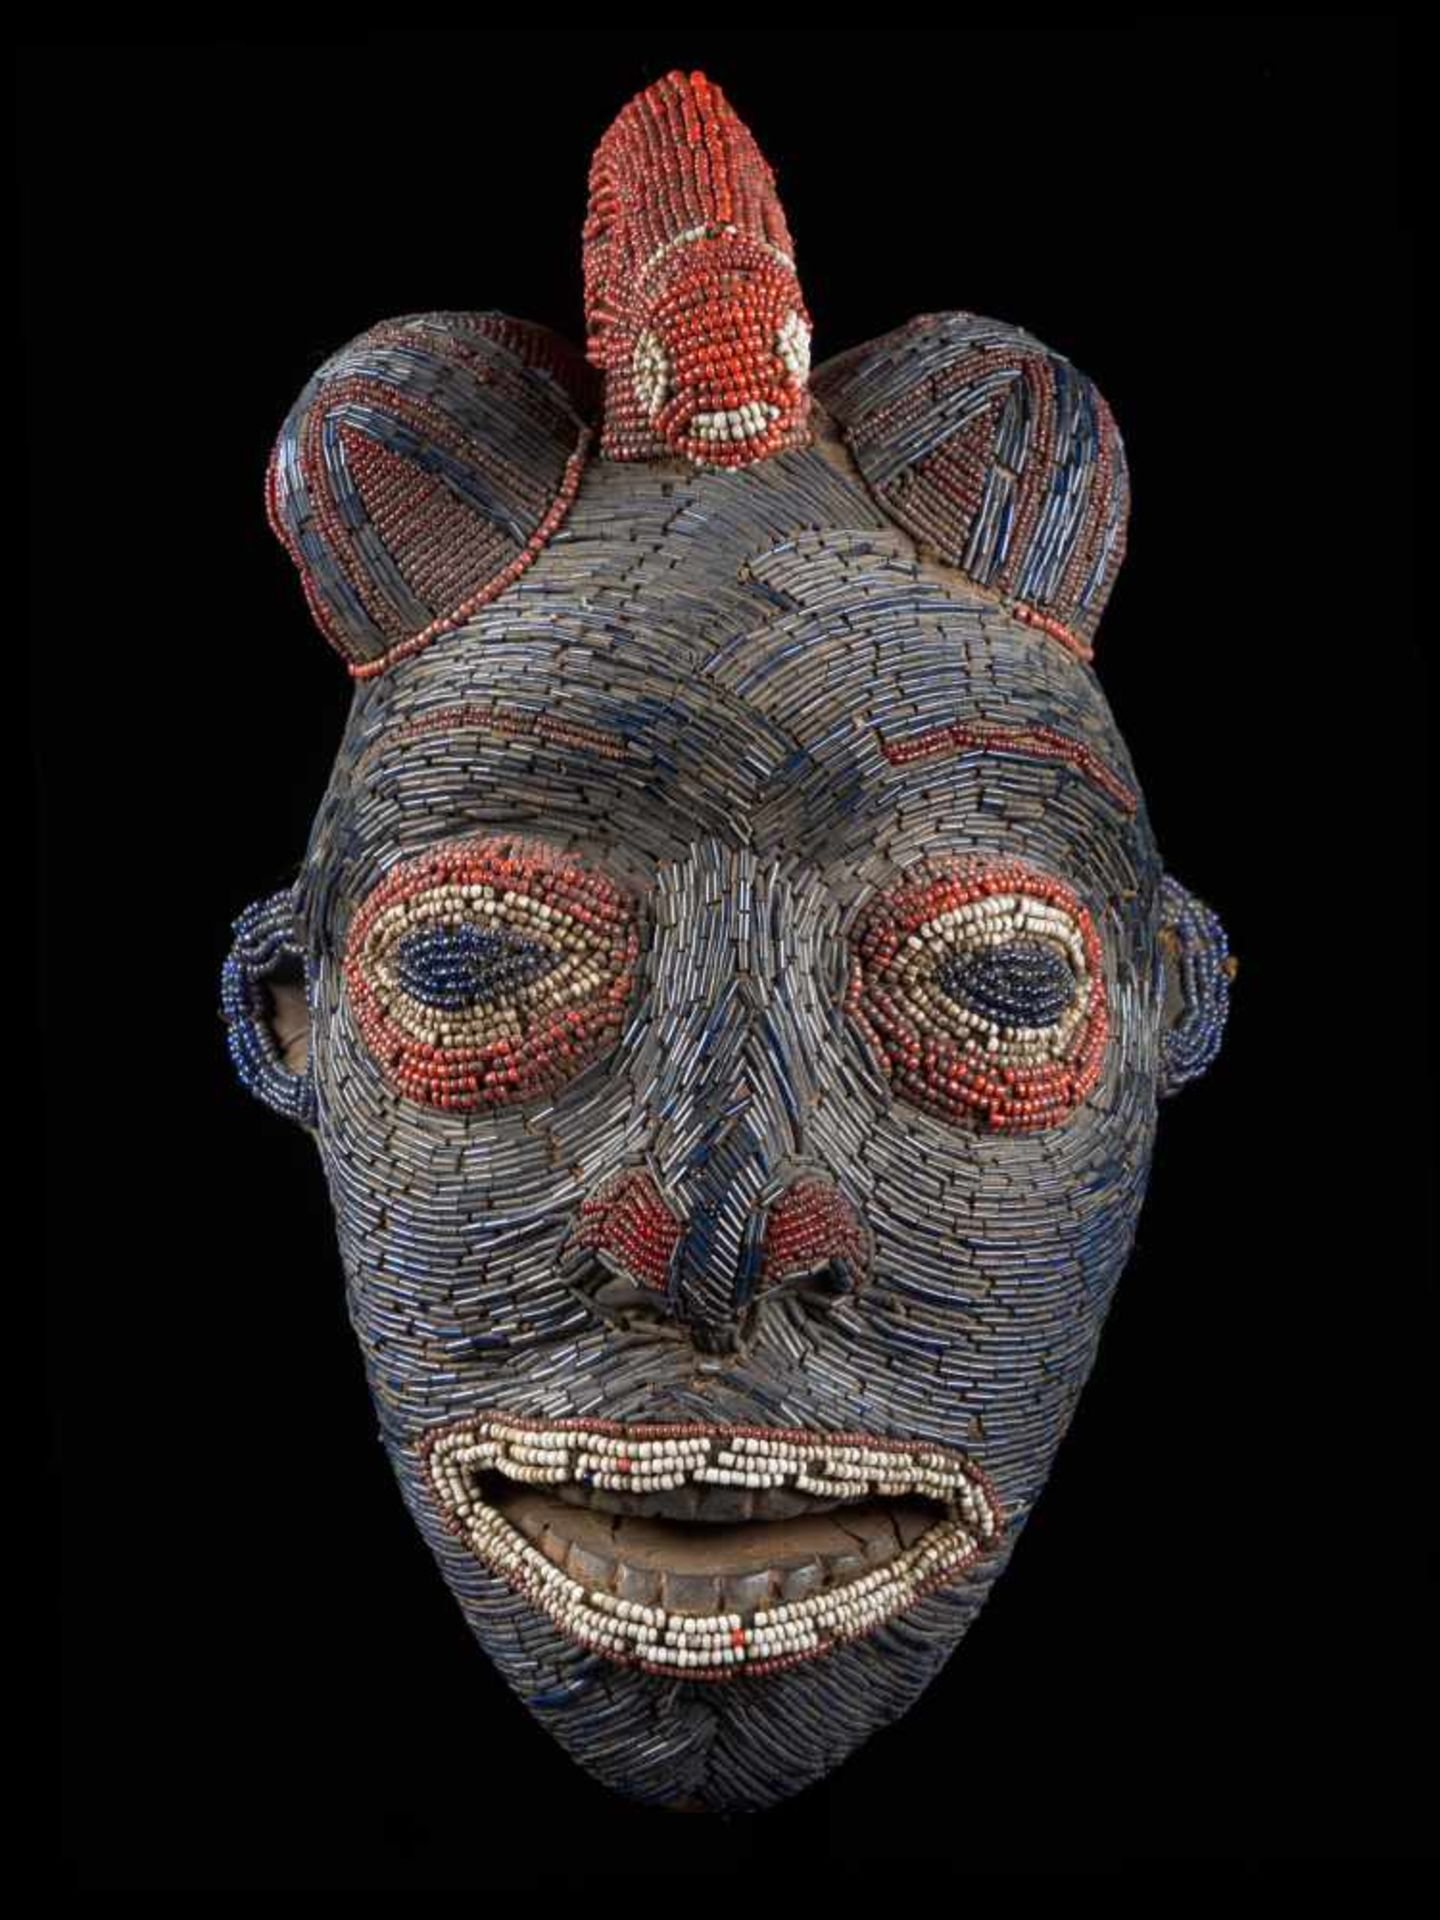 Facemask Topped With Leopard Figure - Tribal ArtAn exquisite blue face mask. This wooden mask is - Bild 2 aus 6